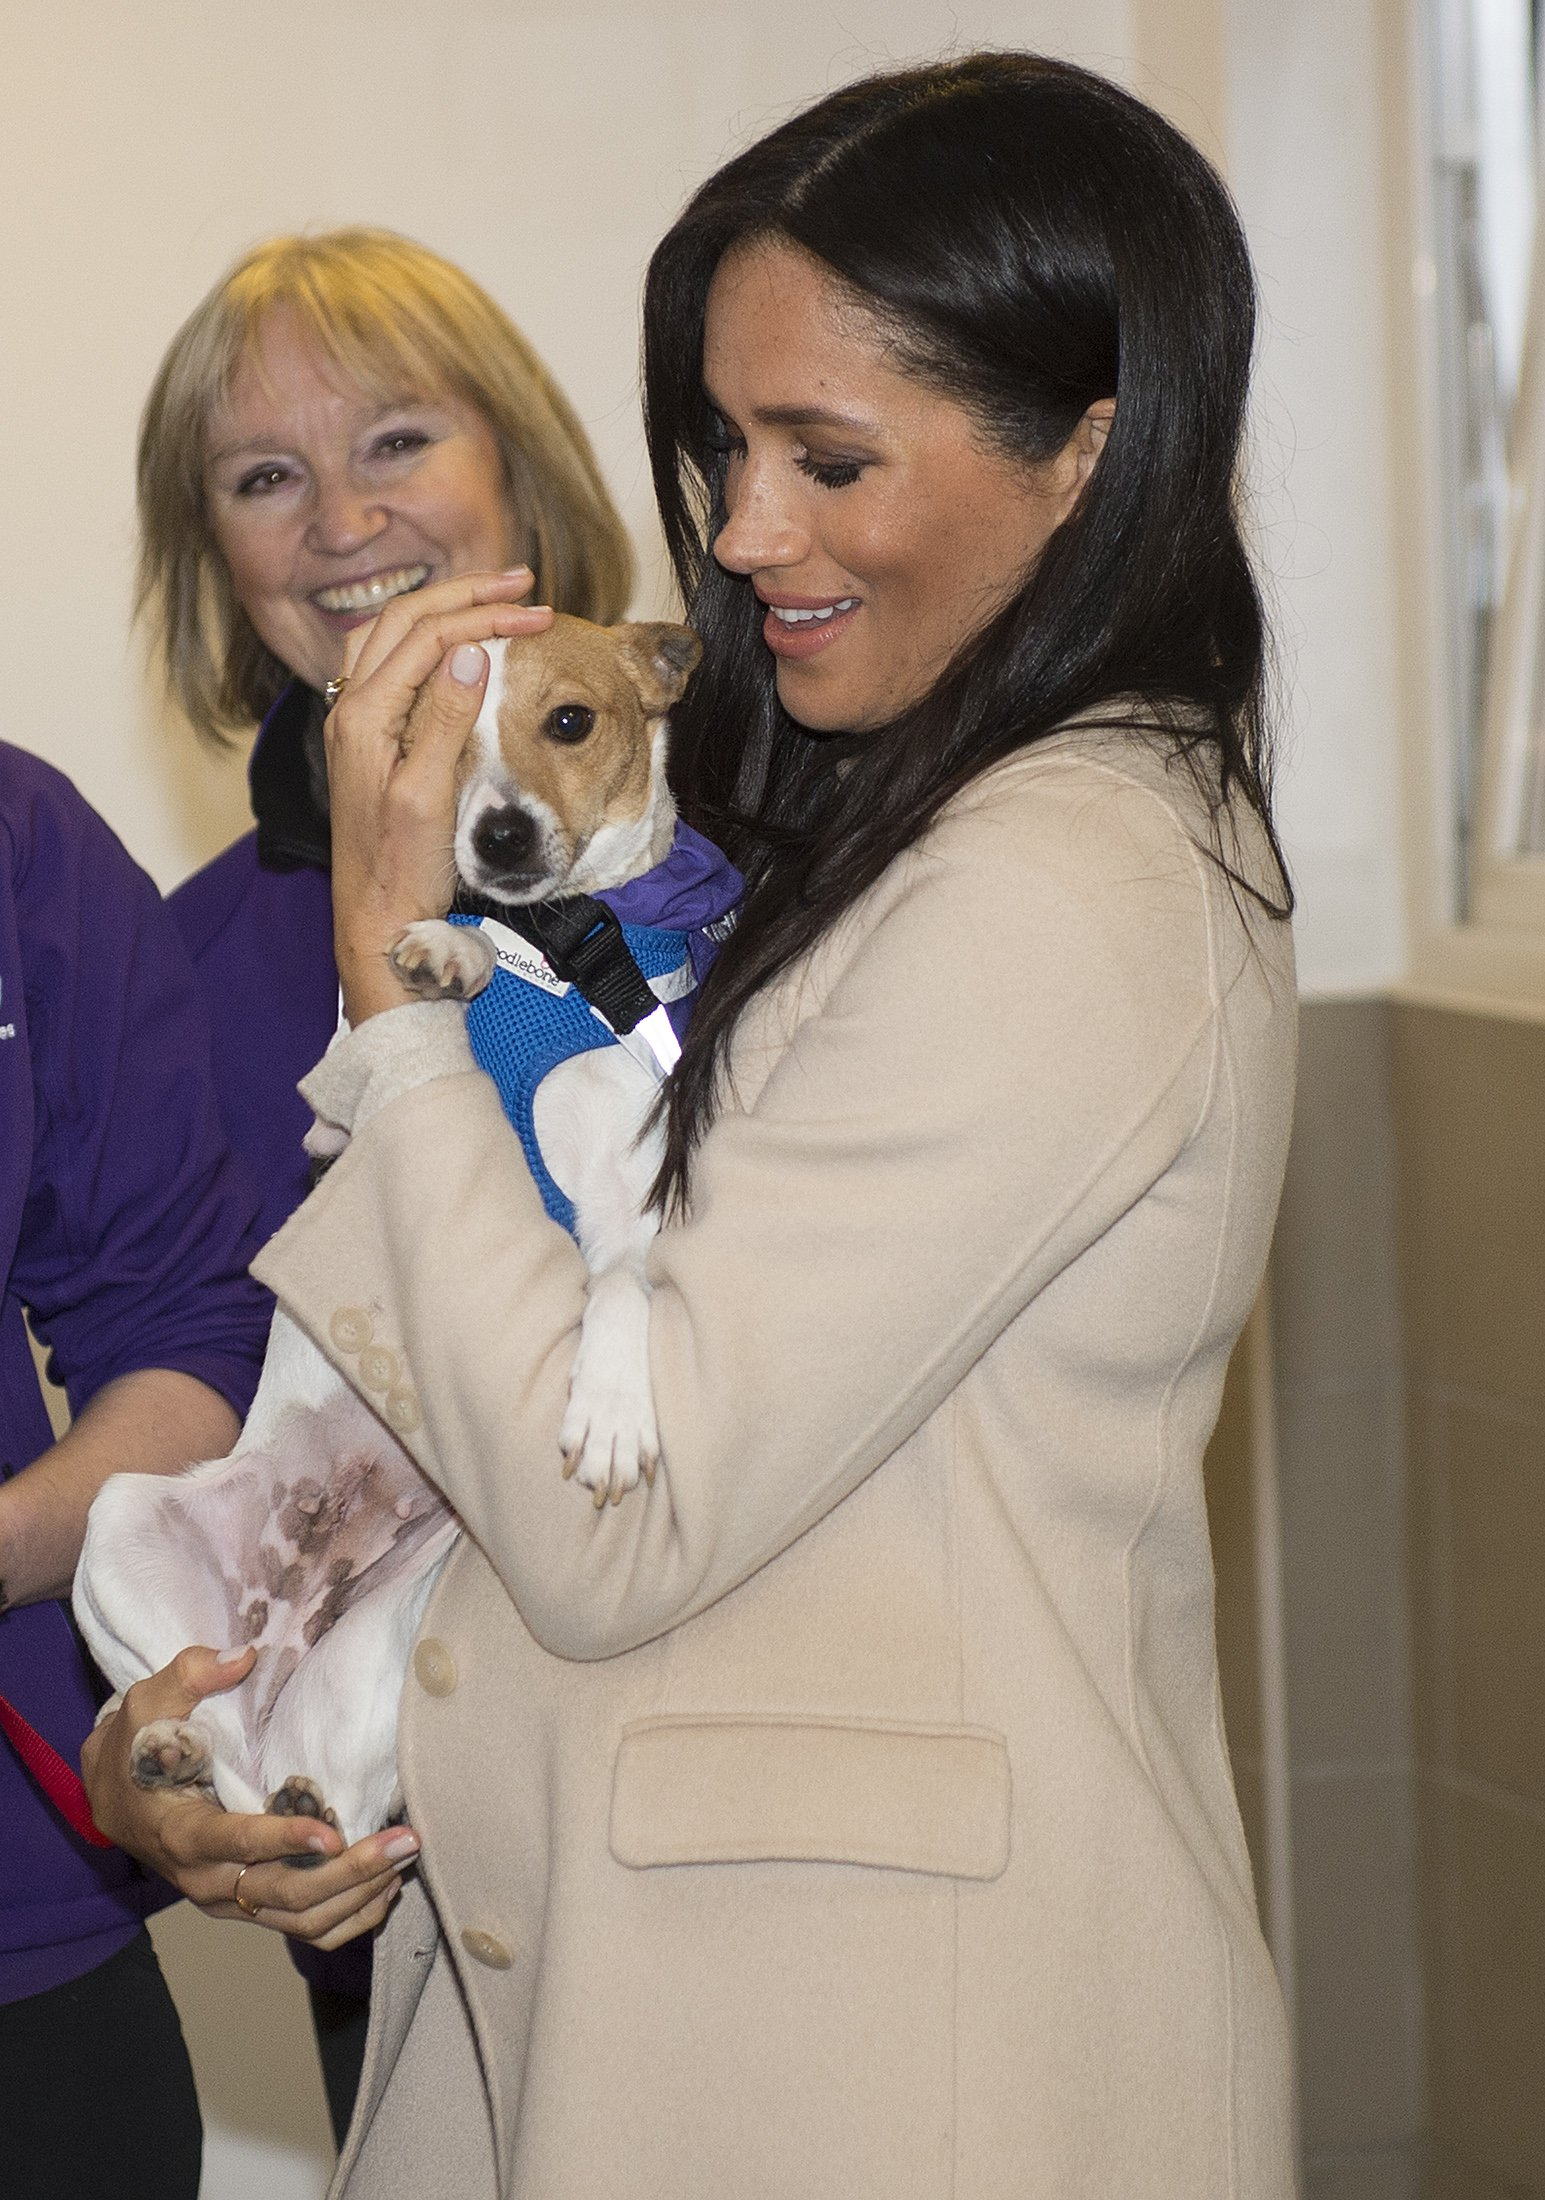 """Meghan, the Duchess of Sussex meets a Jack Russell called """"Minnie"""" during her visit to the Mayhew, an animal welfare charity on January 16, 2019 in London, England. This will be Her Royal Highnesses first official visit to Mayhew in her new role as Patron. 